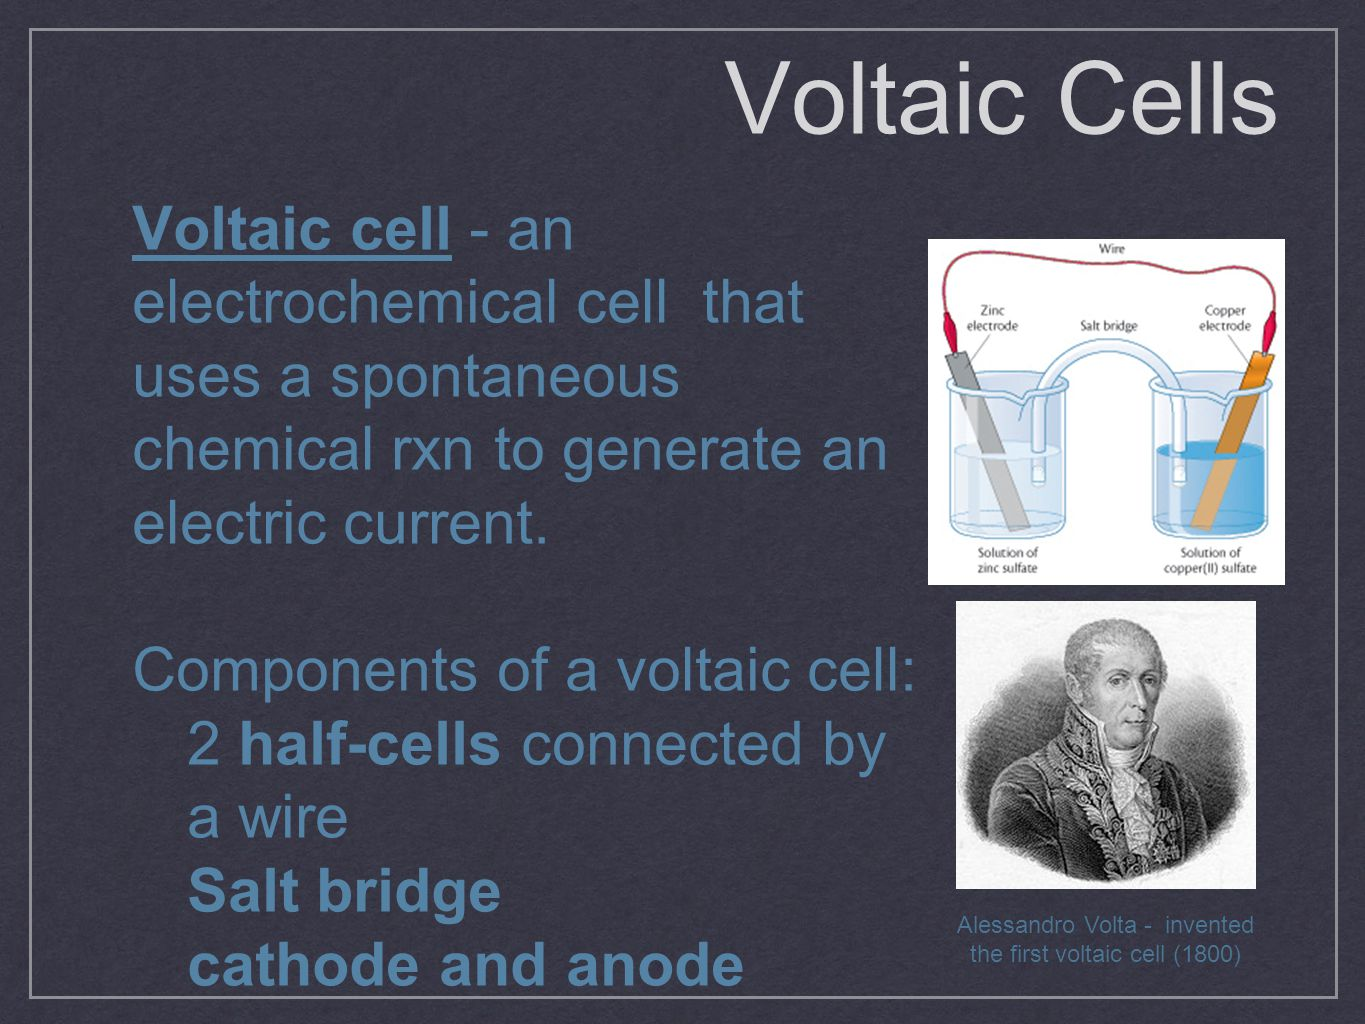 Voltaic Cells Voltaic cell - an electrochemical cell that uses a spontaneous chemical rxn to generate an electric current.